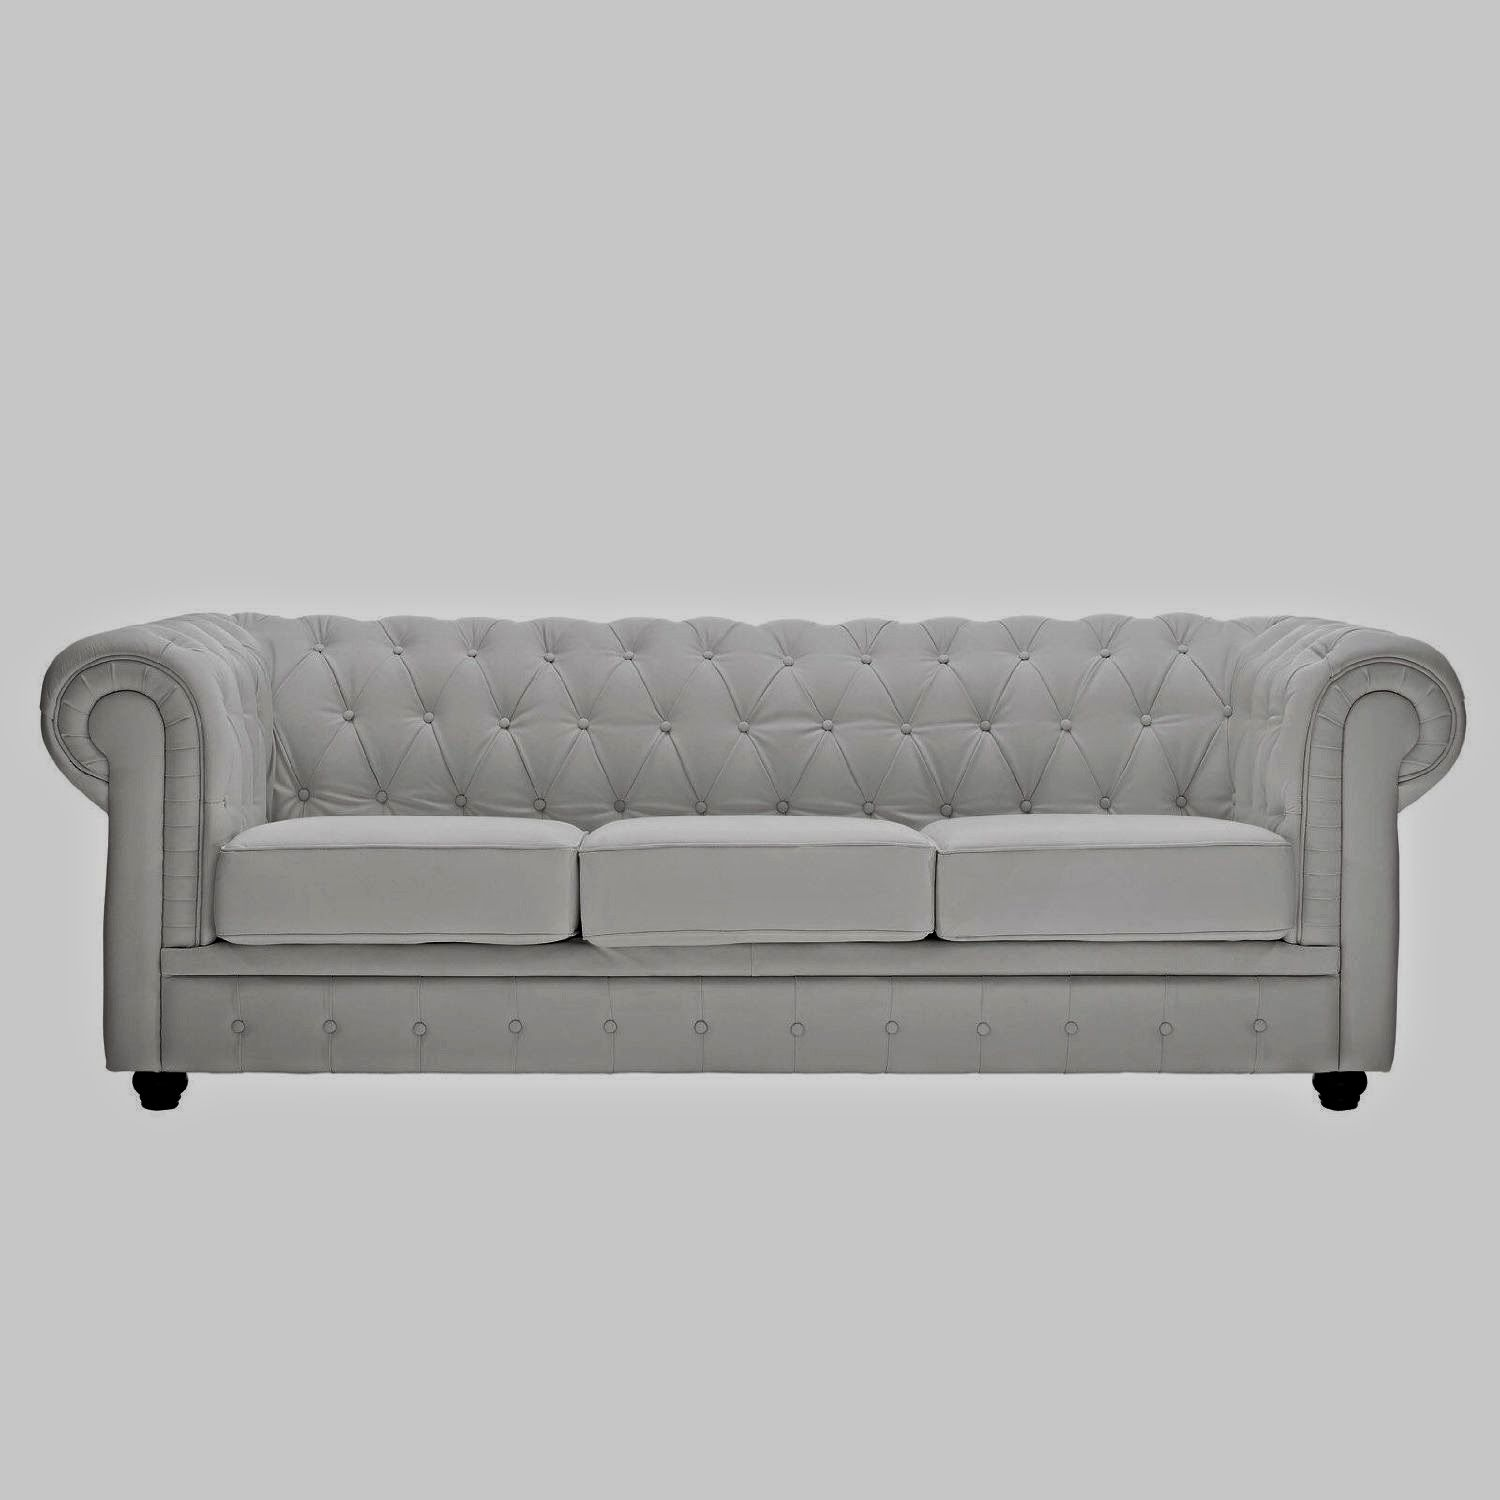 top tufted chesterfield sofa picture-Cute Tufted Chesterfield sofa Collection